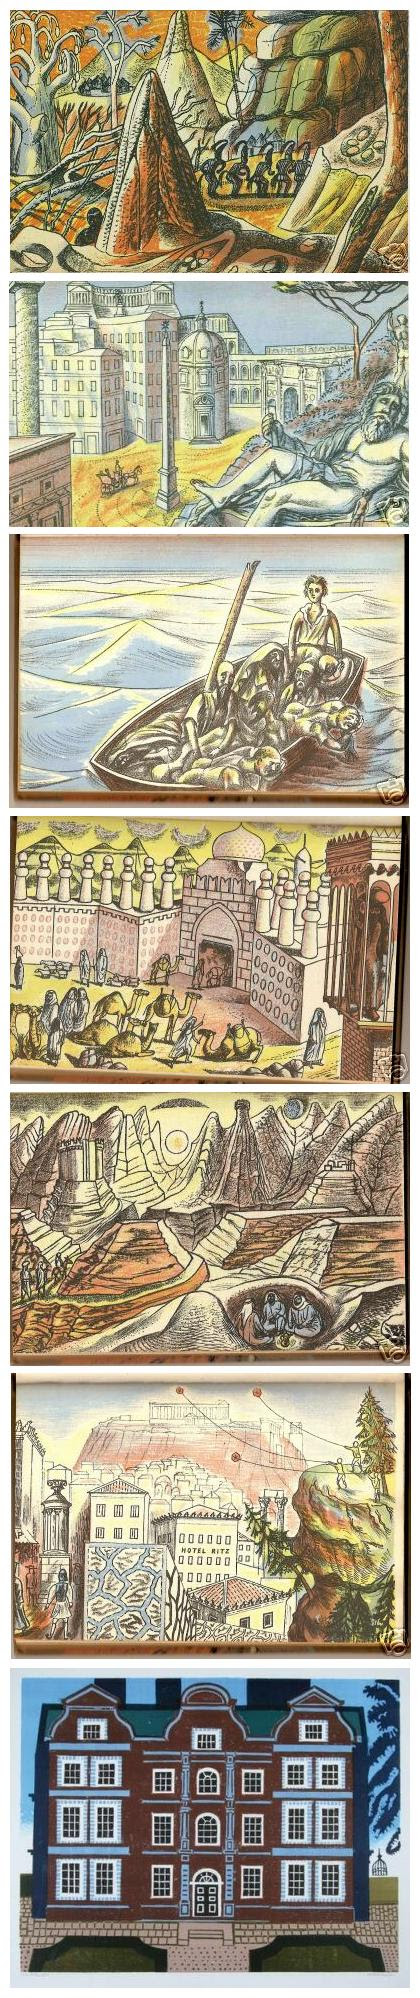 Edward Bawden compilation - Jerusalem Gate Camels + Pilgrims Ass, Don Juan Ship, Kew Palace (2 uknown)